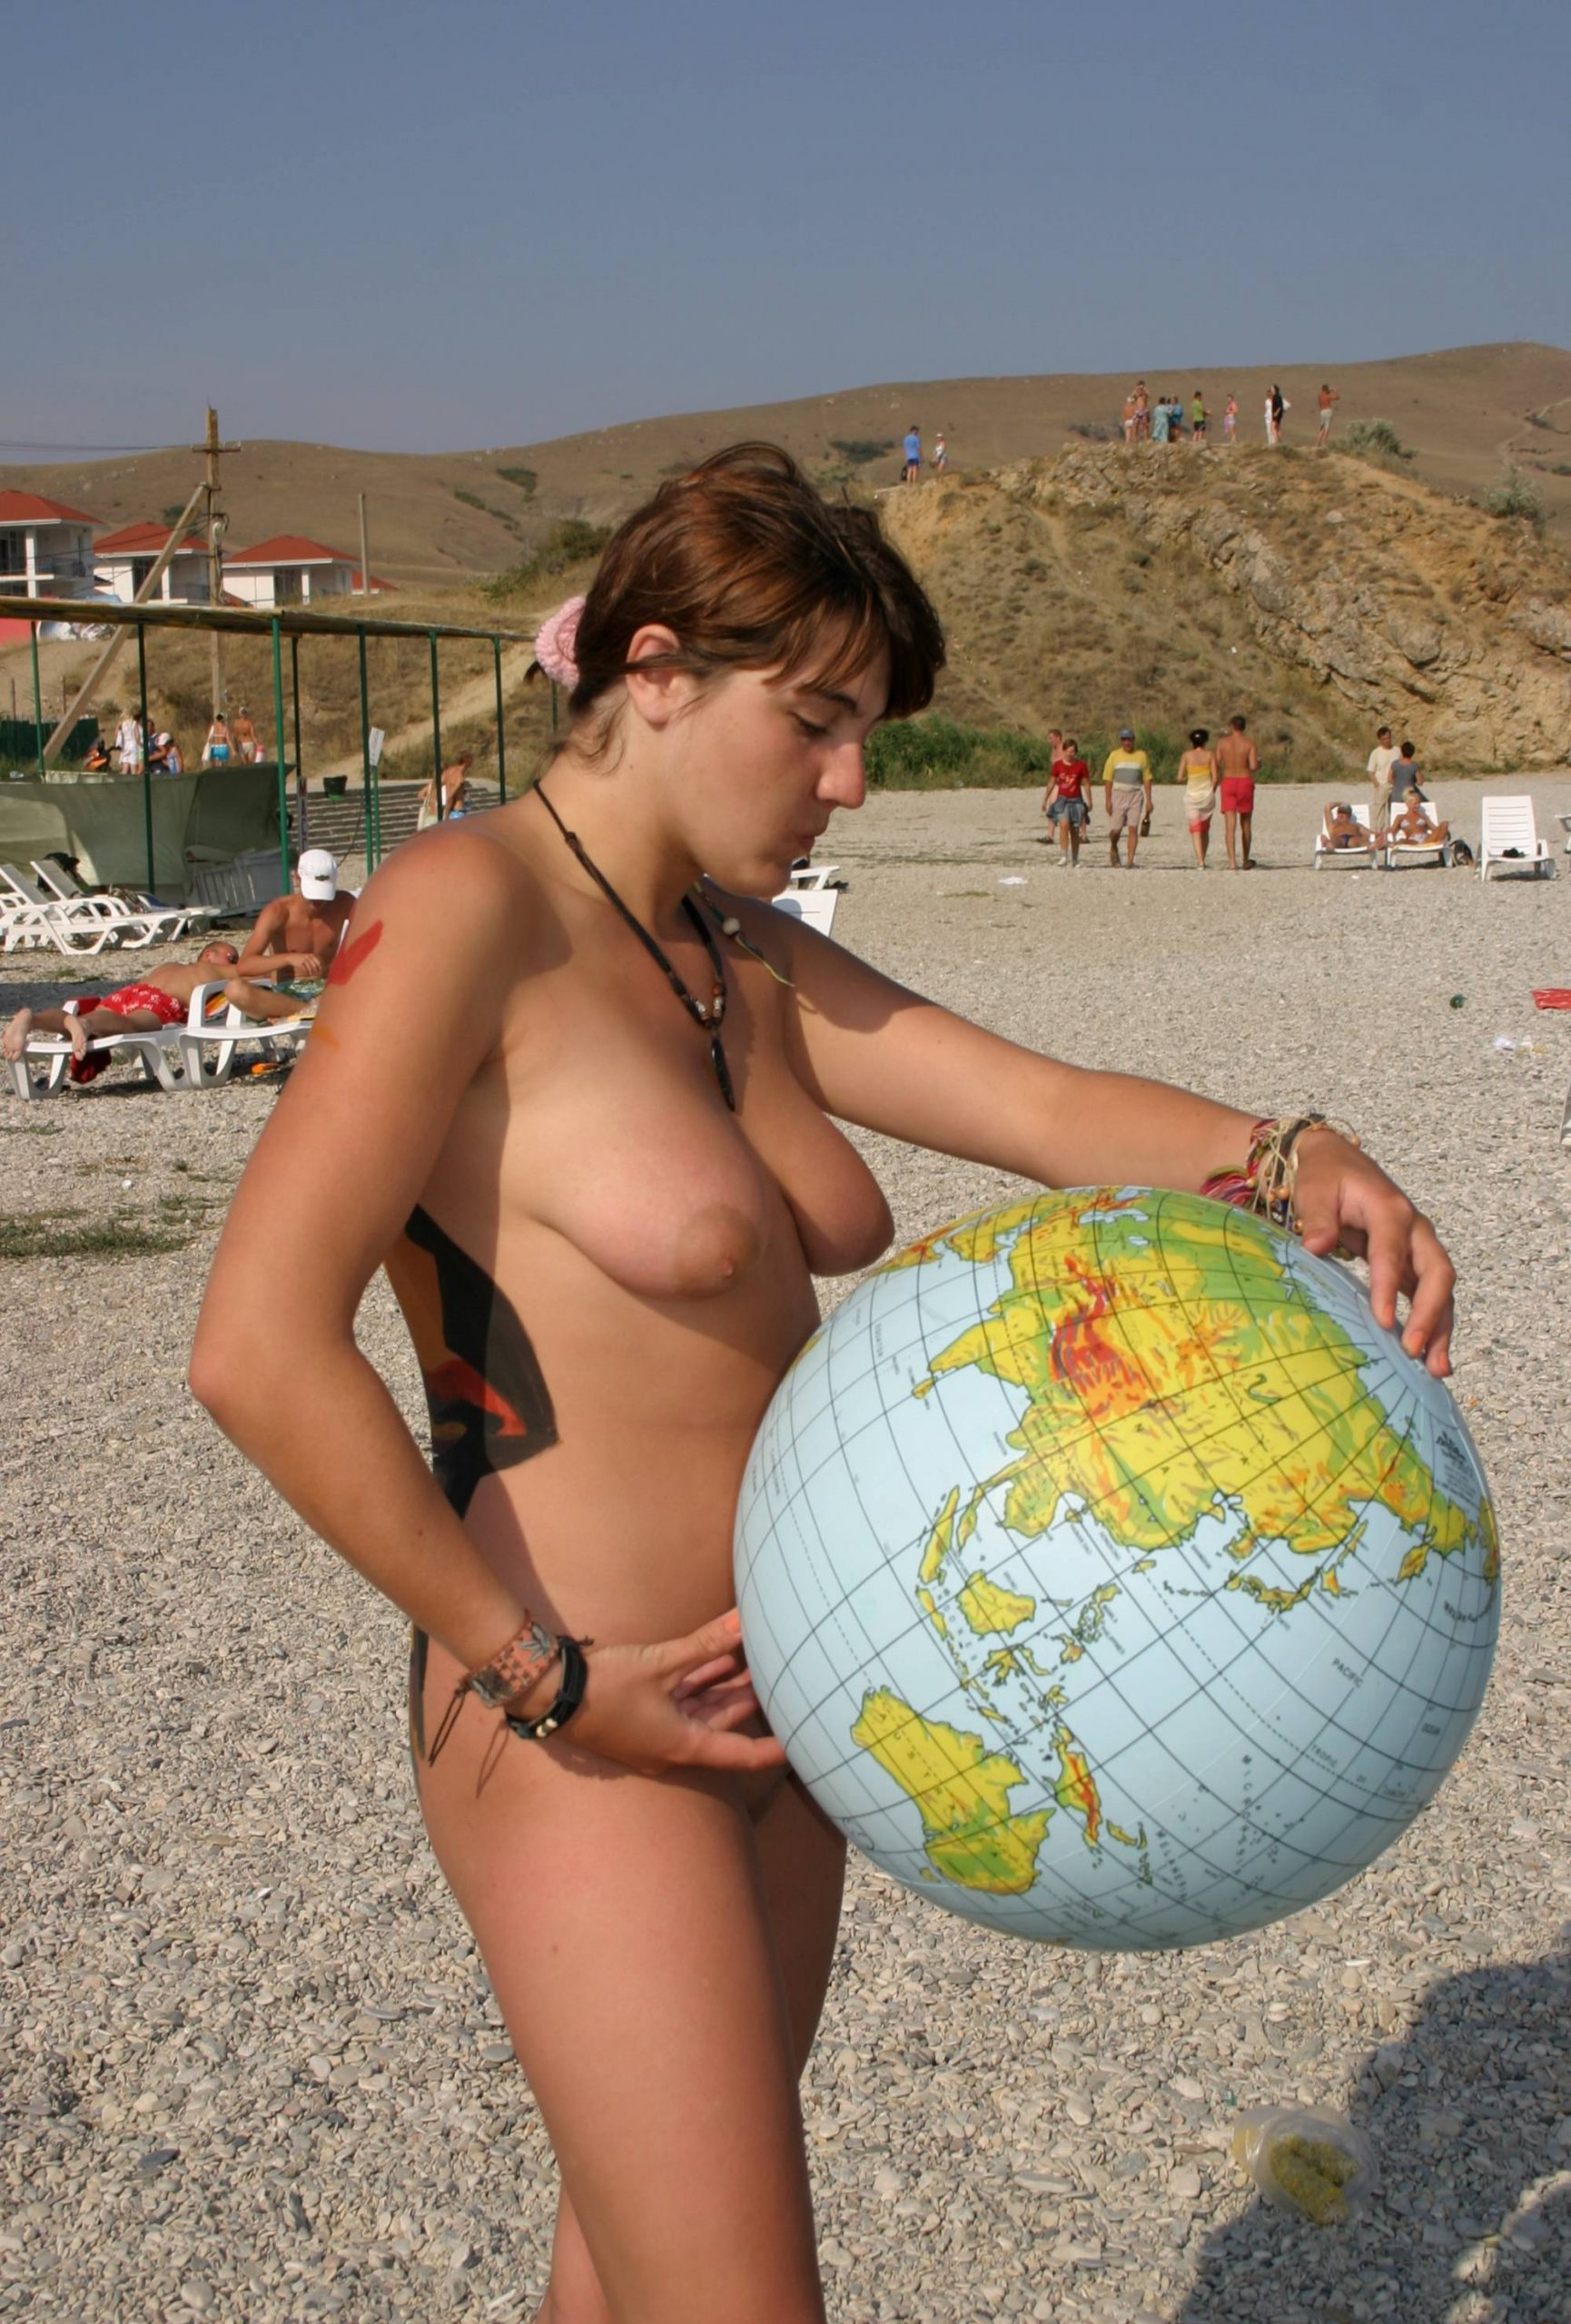 Purenudism Images-World Beach Ball in the Air - 1